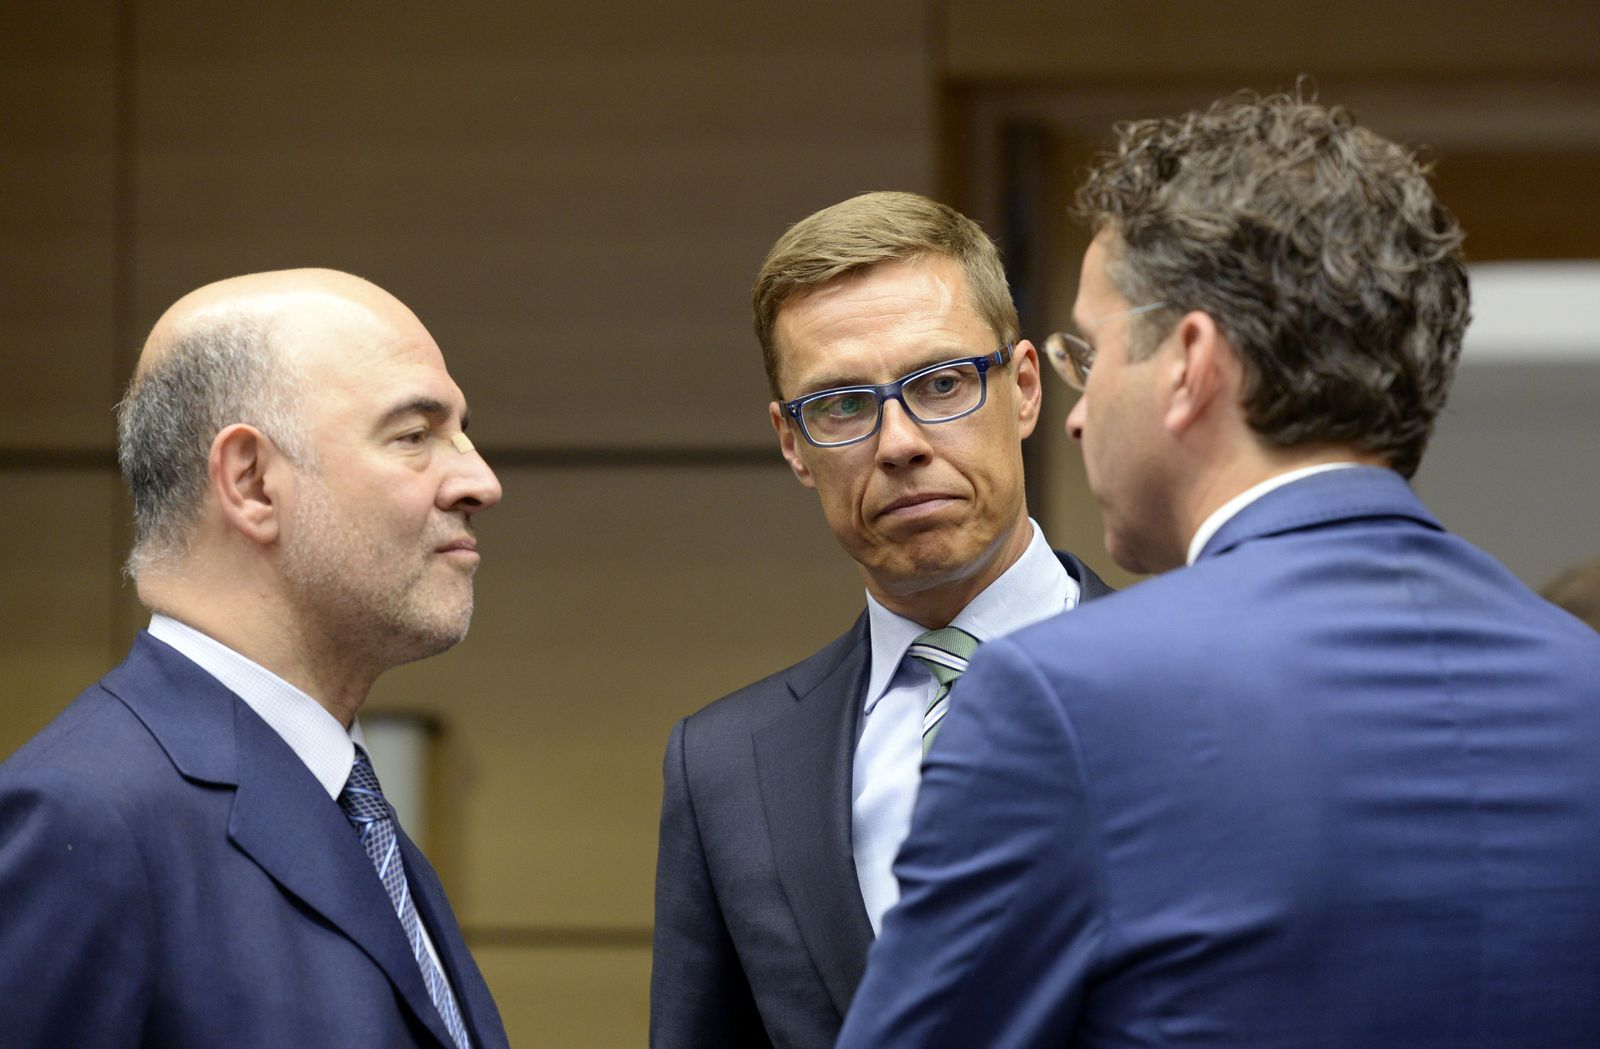 BELGIUM-GREECE-EU-POLITICS-DEBT